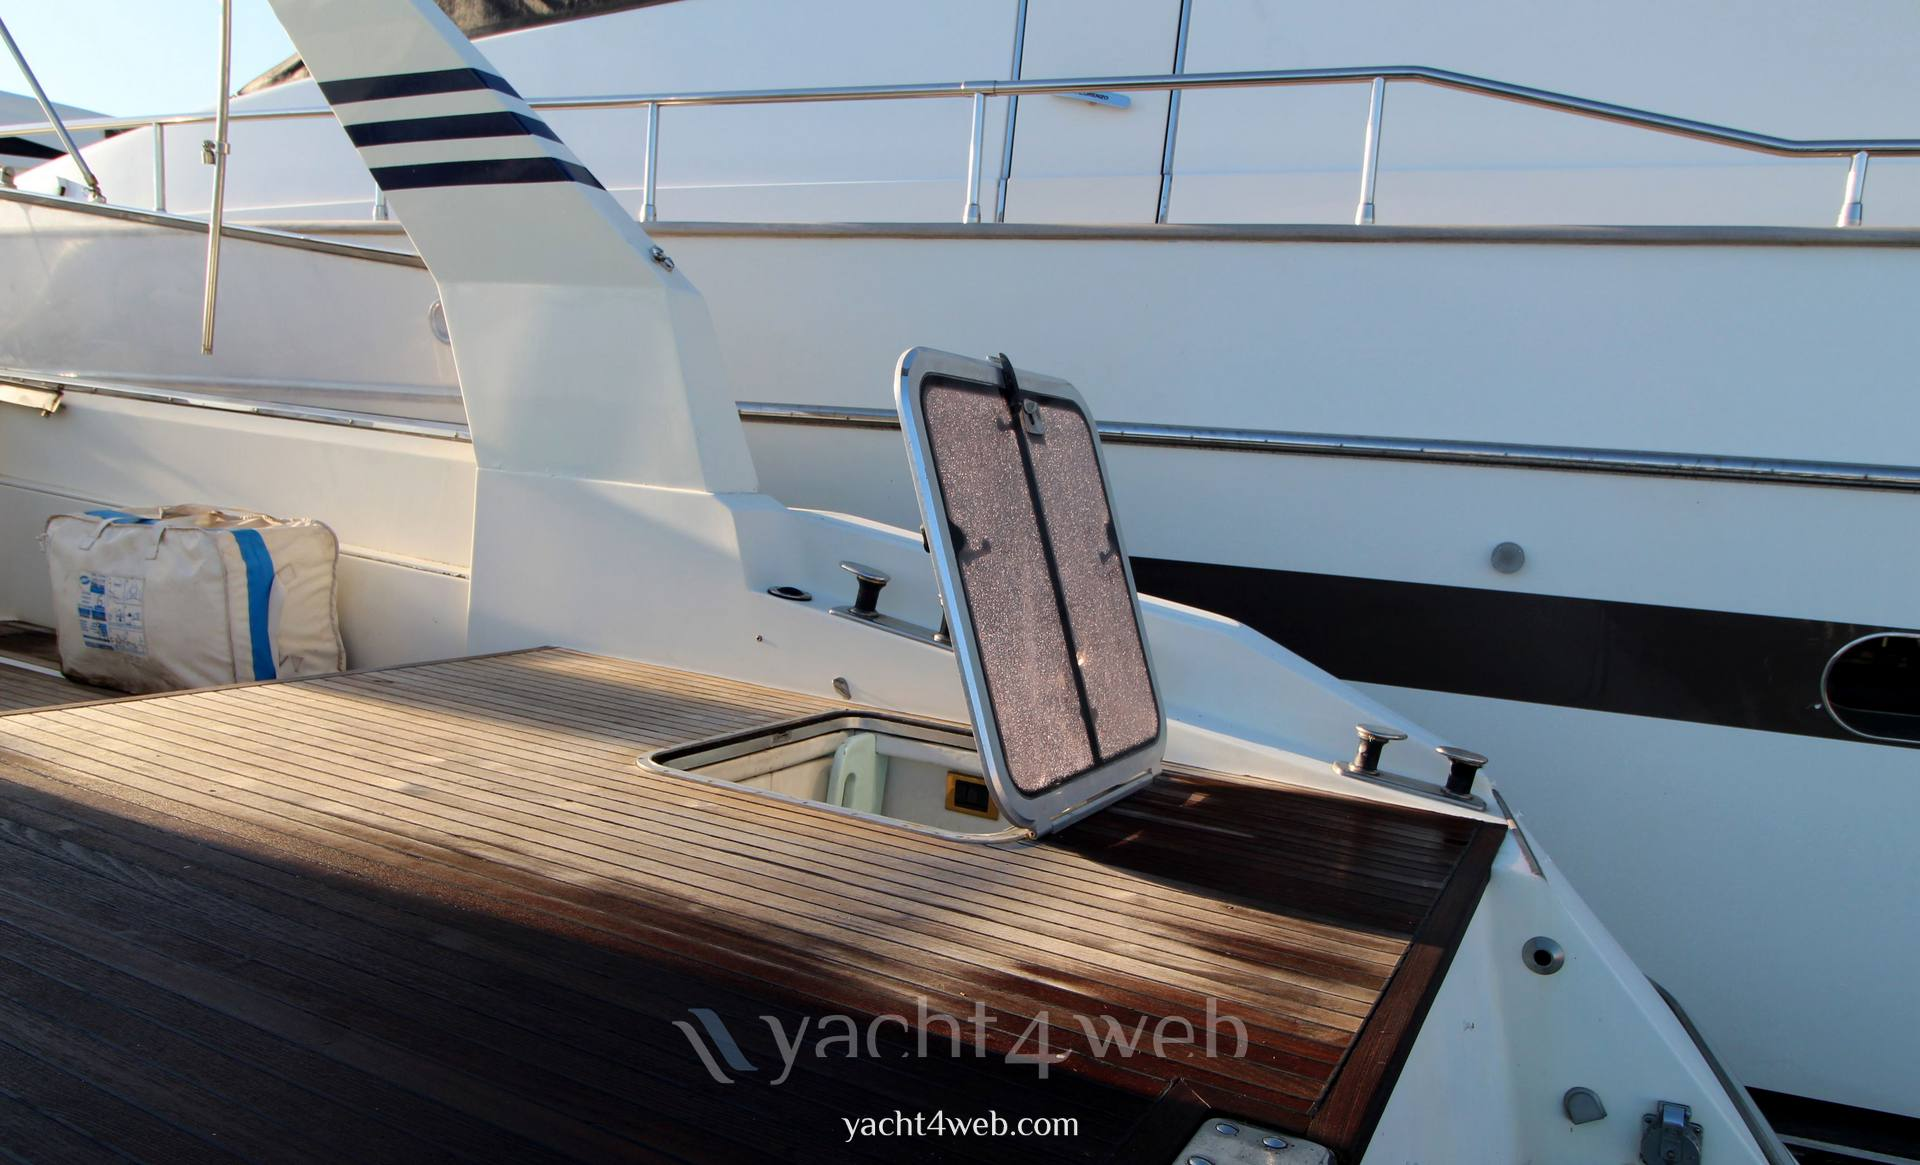 Dual Craft 56 open motor boat